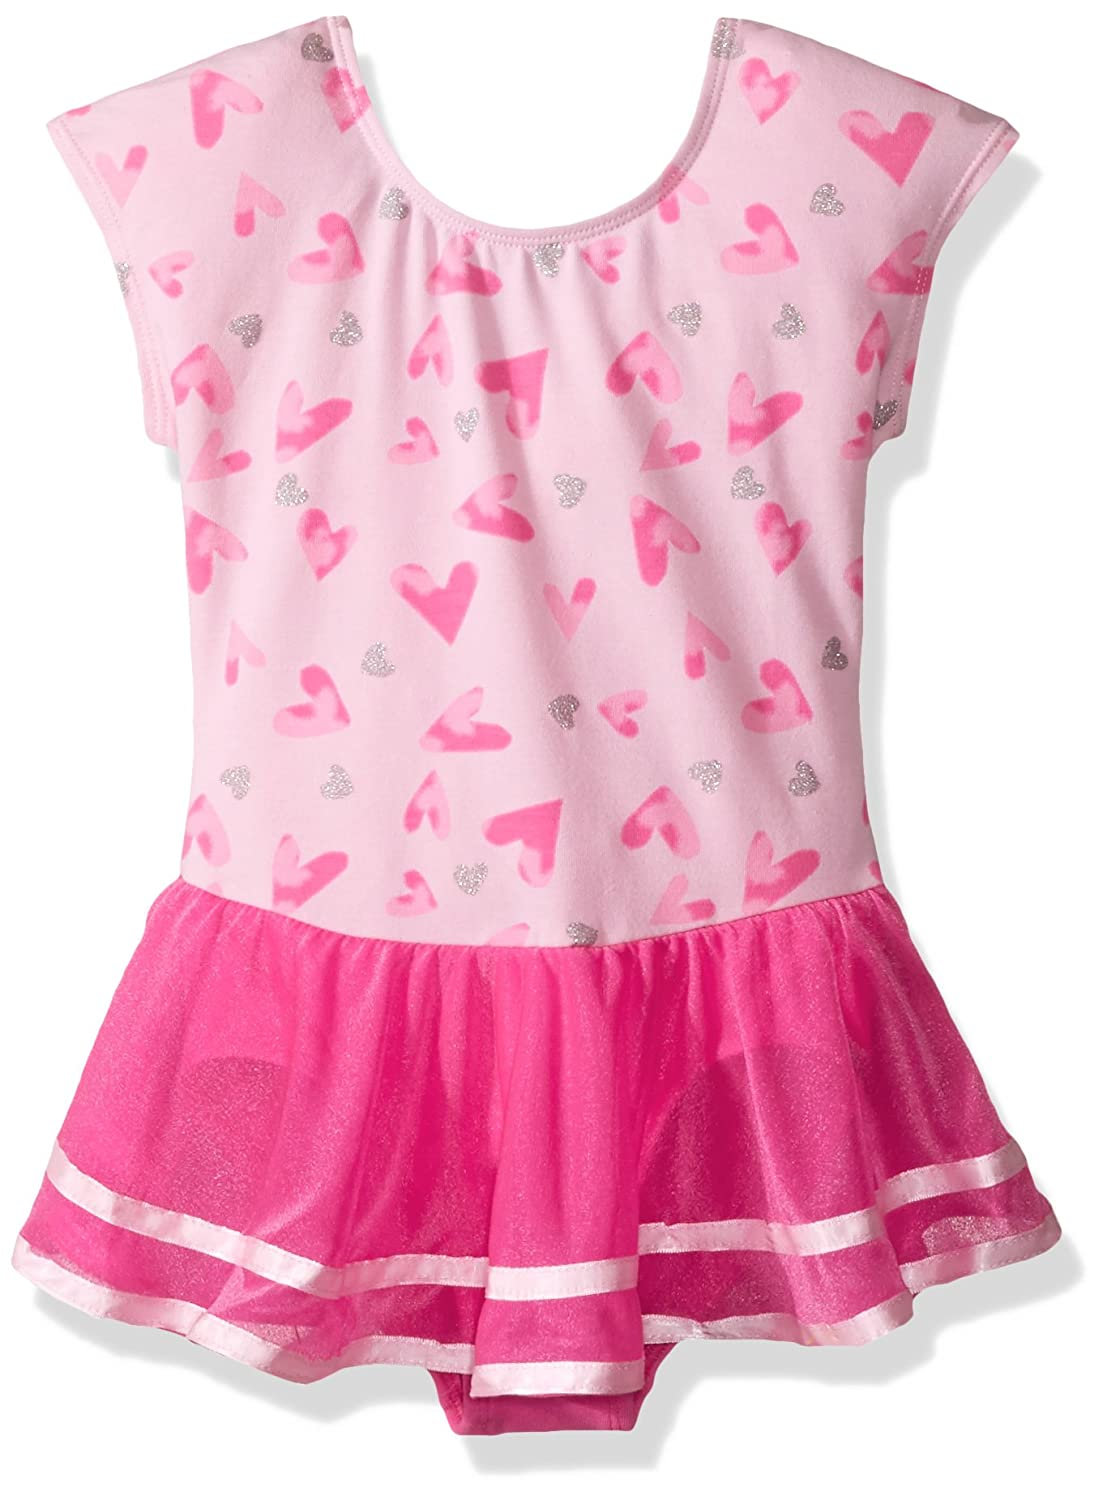 Jacques Moret Girls '拡張スリーブレオタードwith Attached 5層チュチュ B06VVX998H Multi Piink 5